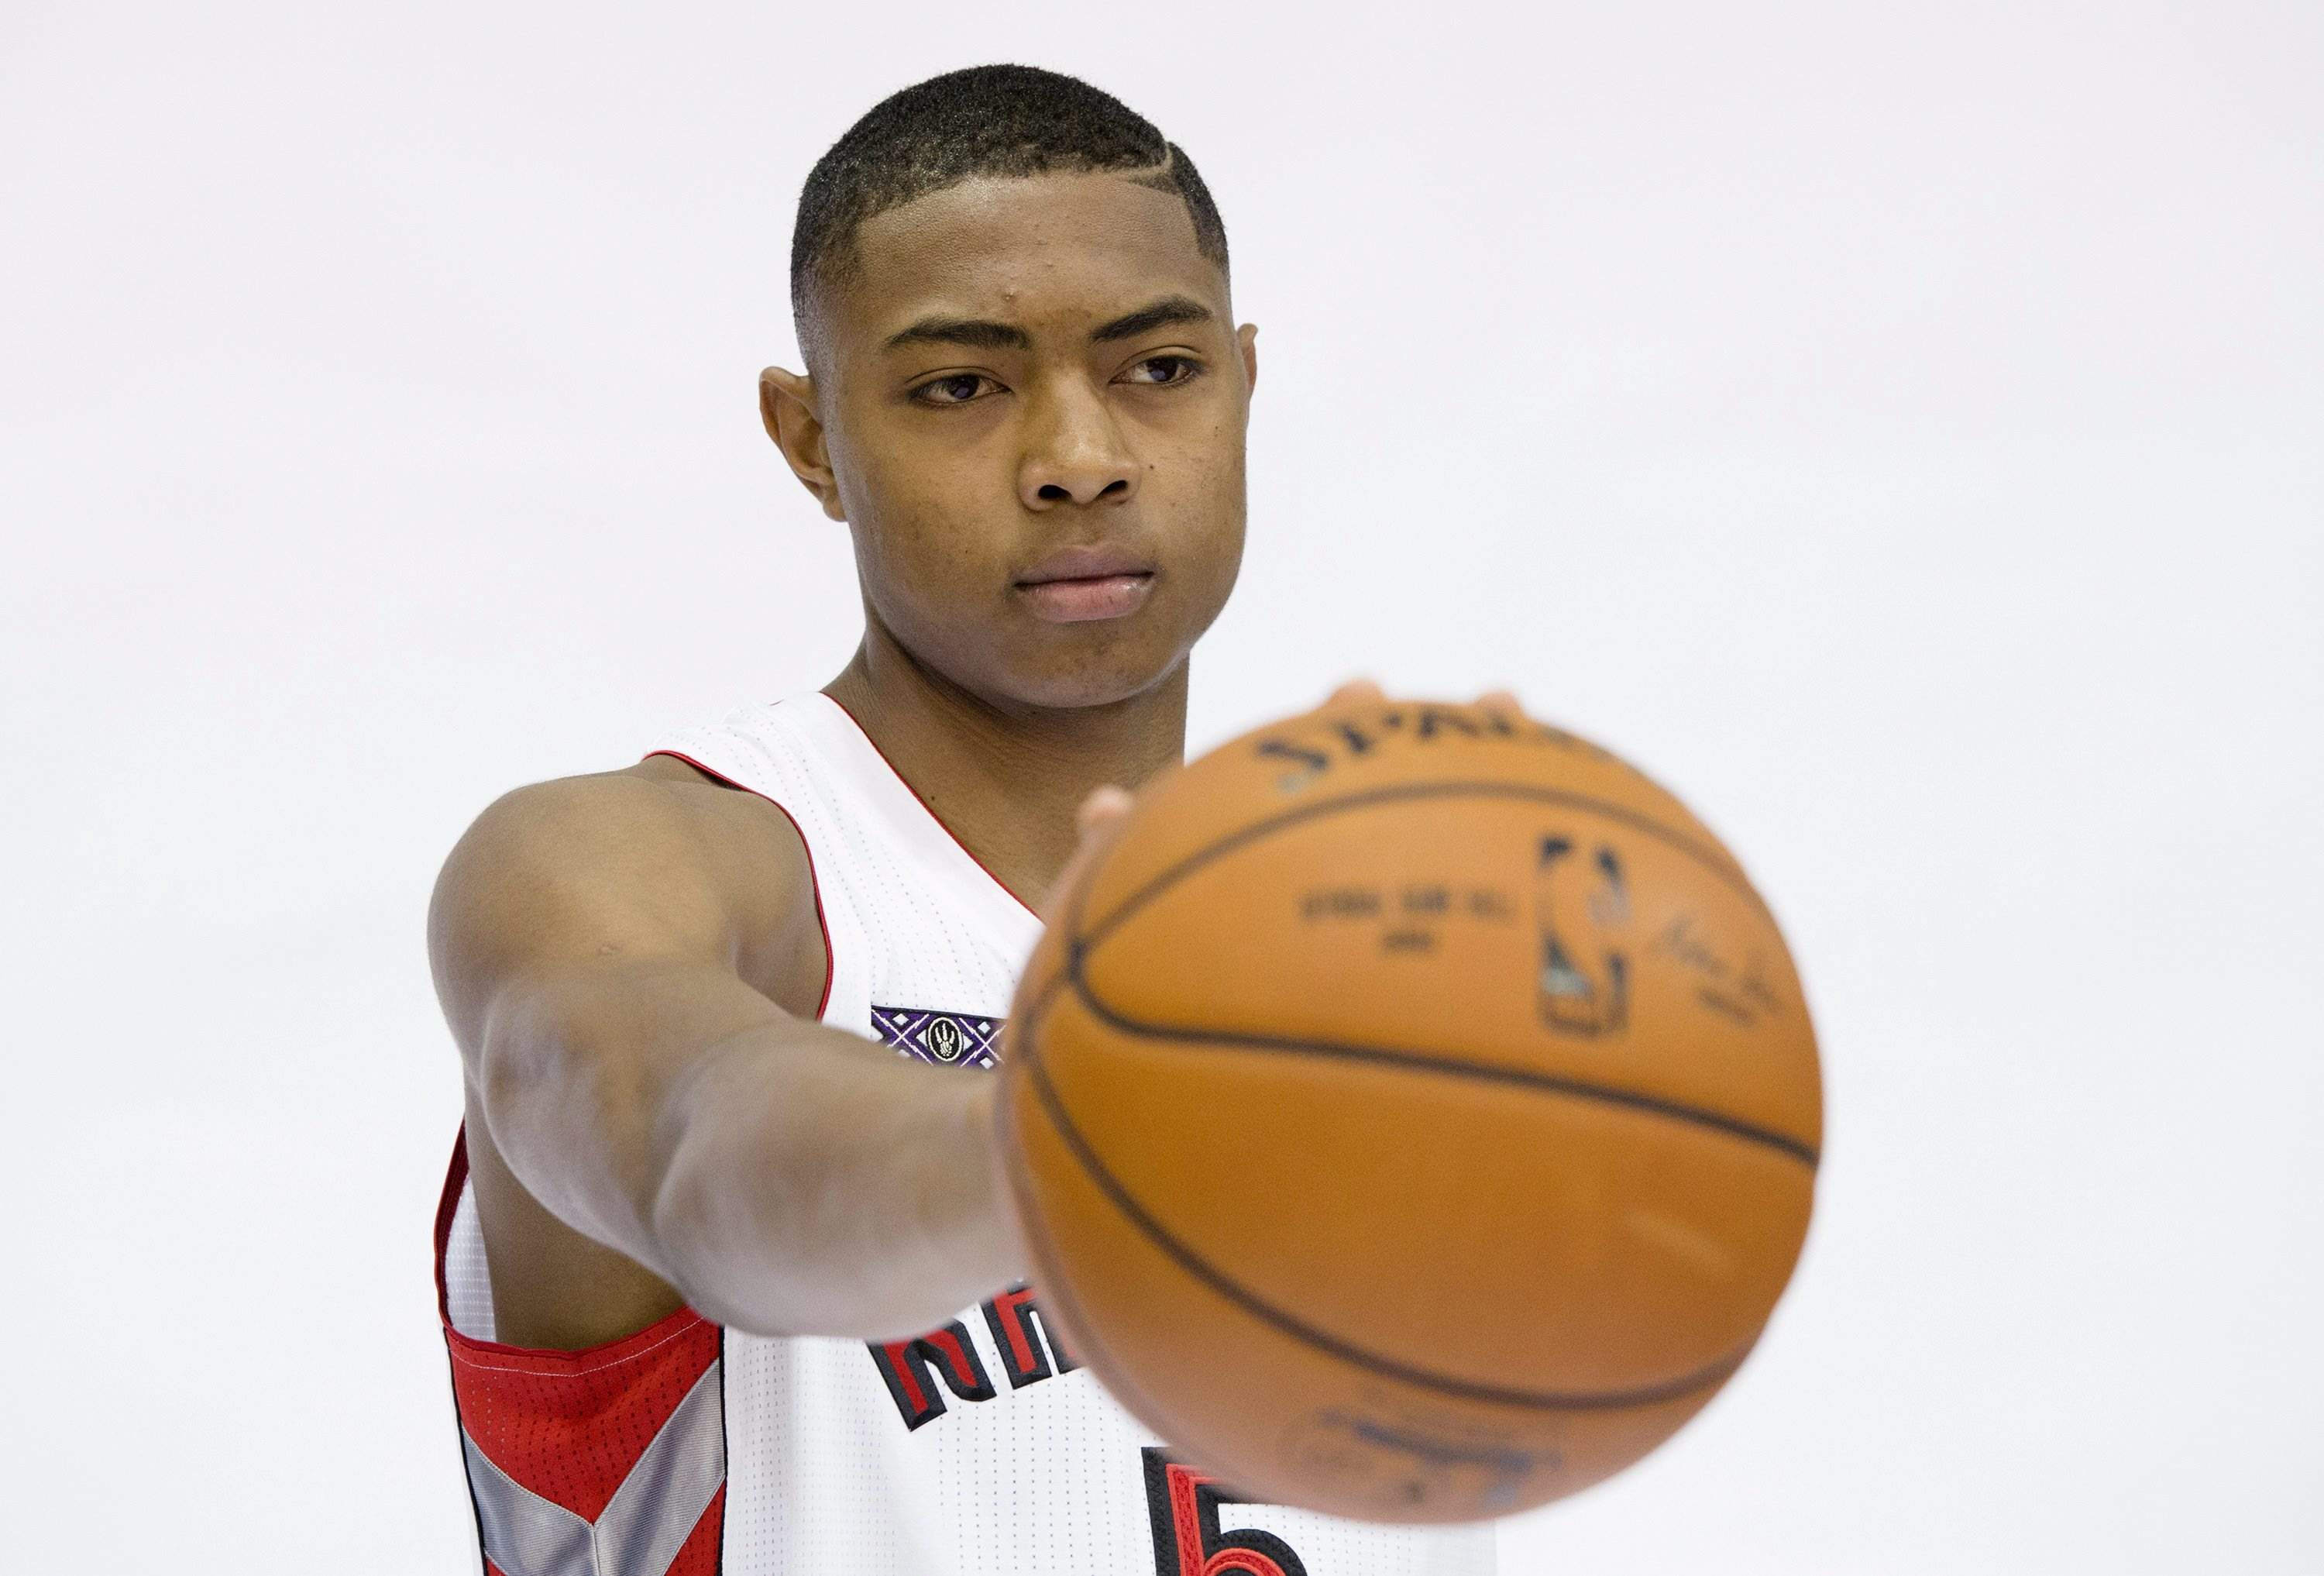 Raptors rookie Bruno Caboclo thought Portland, Maine was Boston